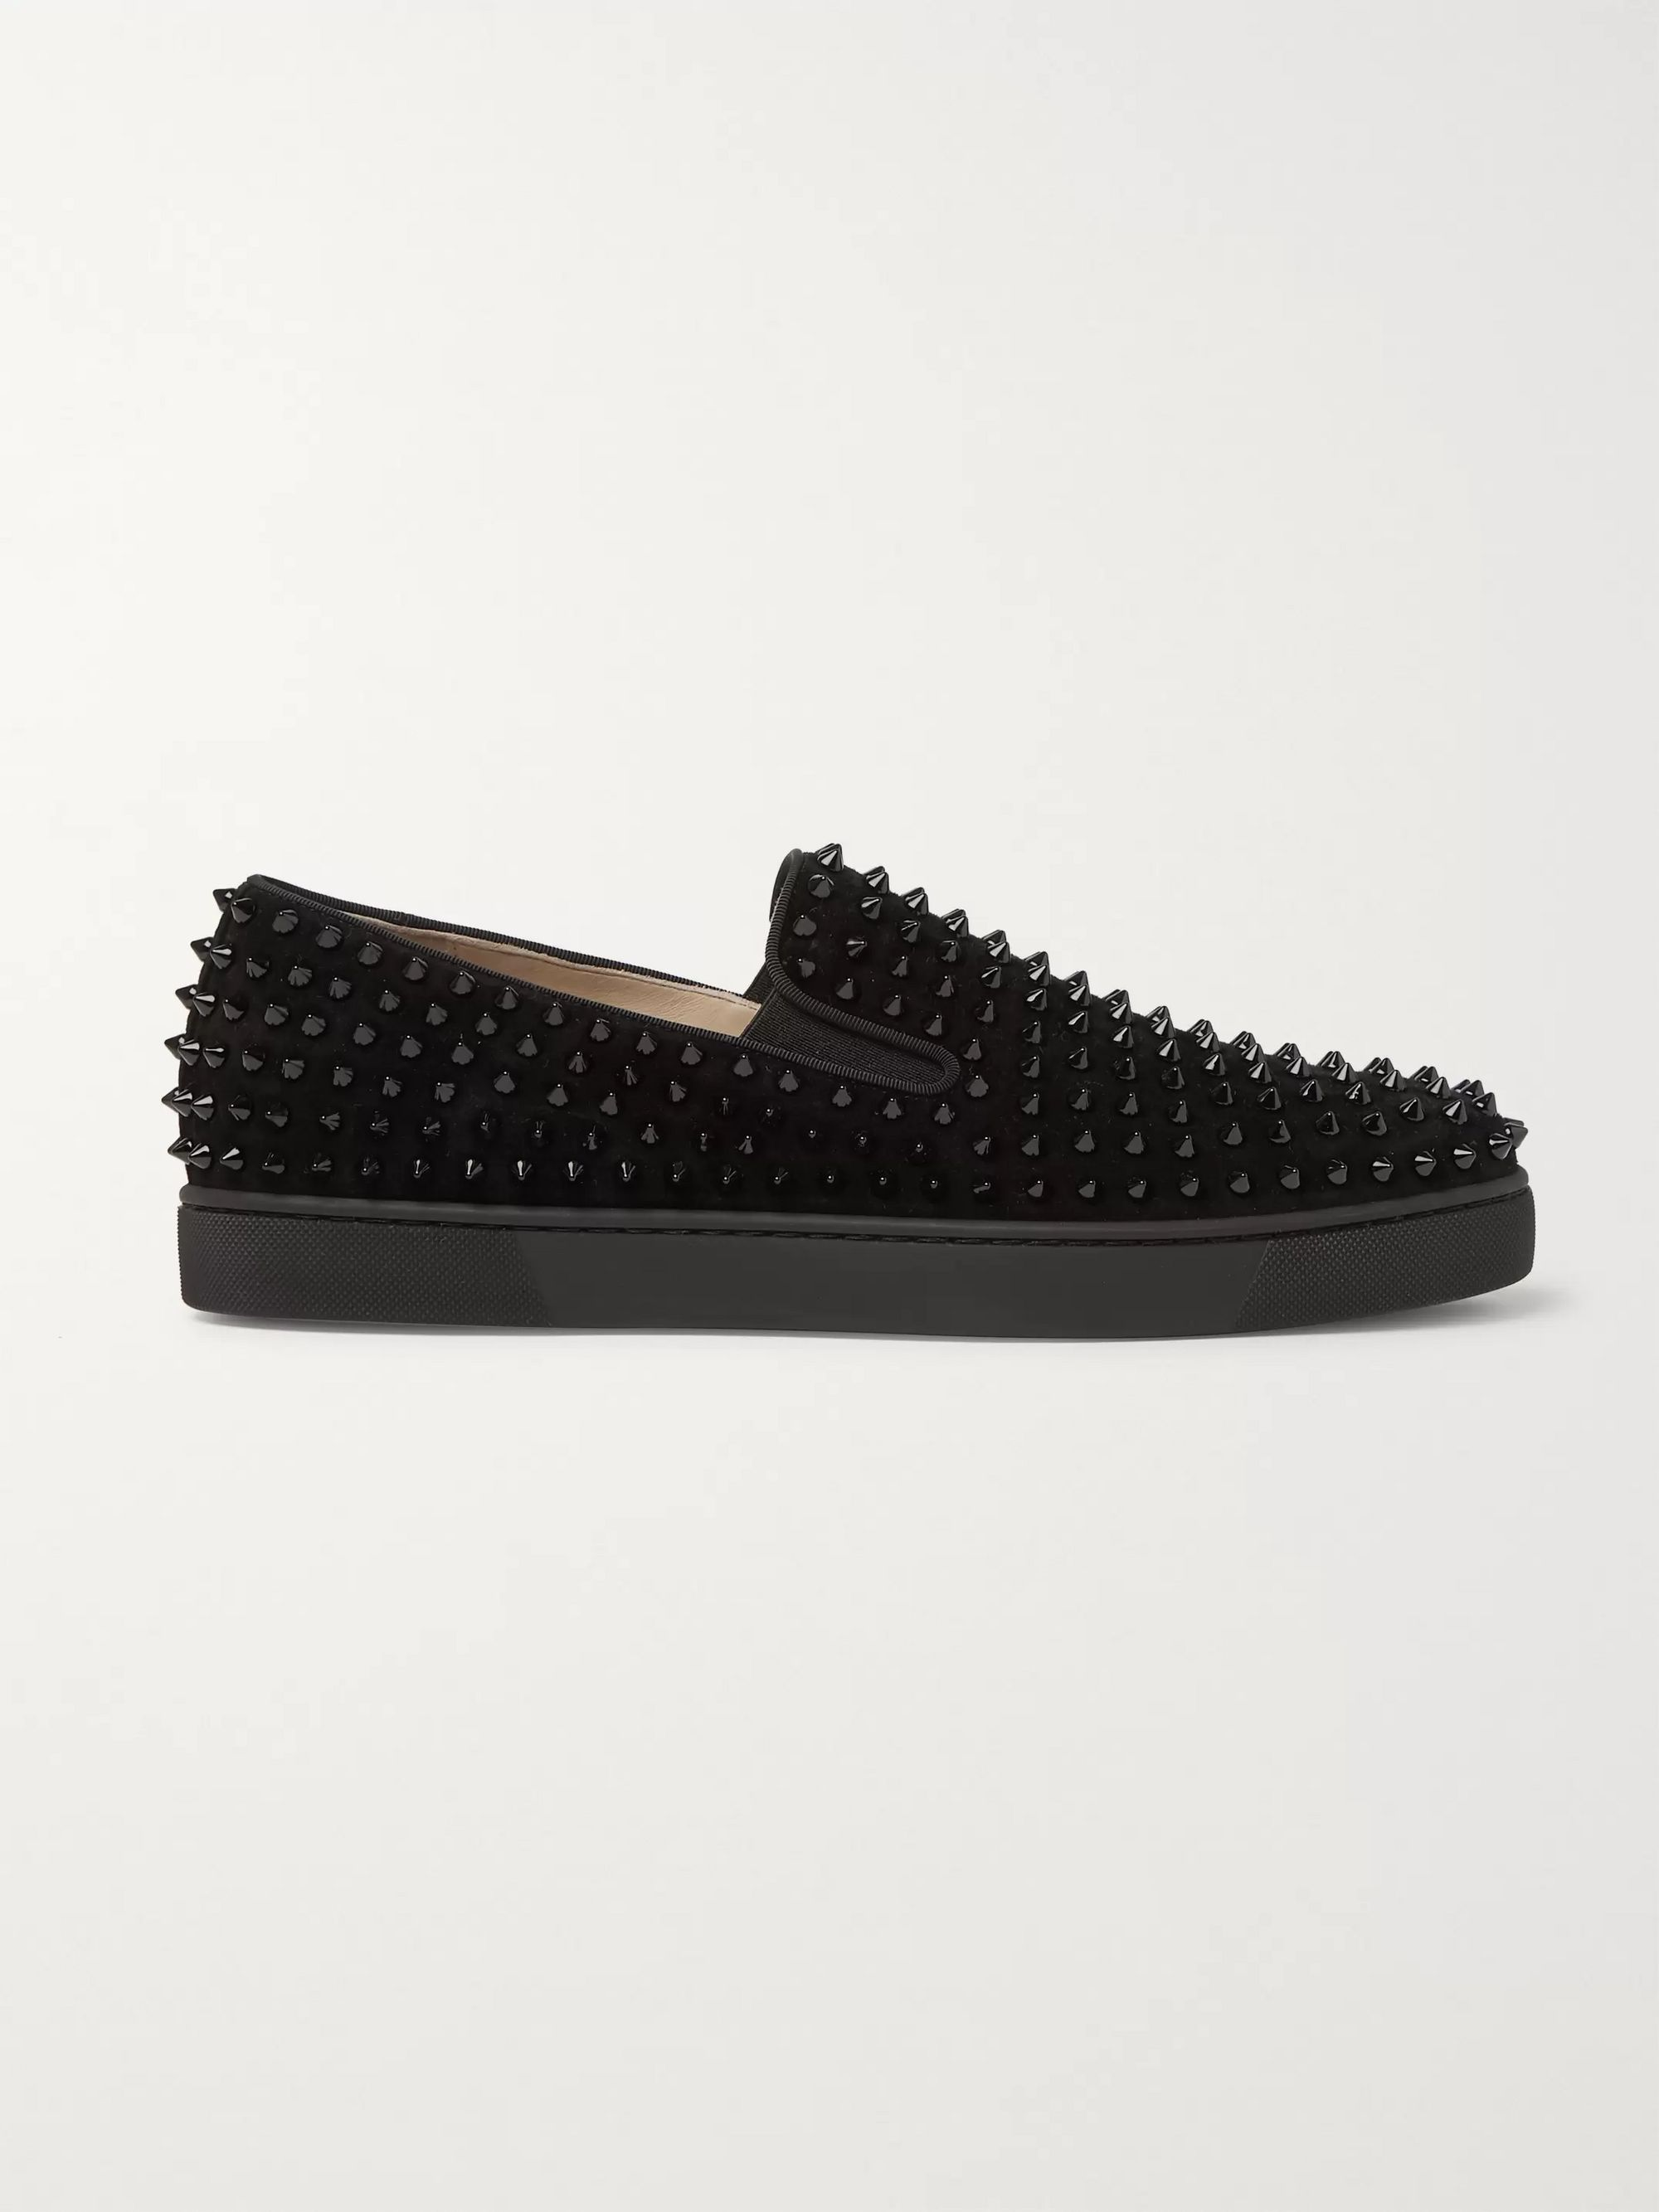 Christian Louboutin Roller-Boat Spiked Suede Slip-On Sneakers